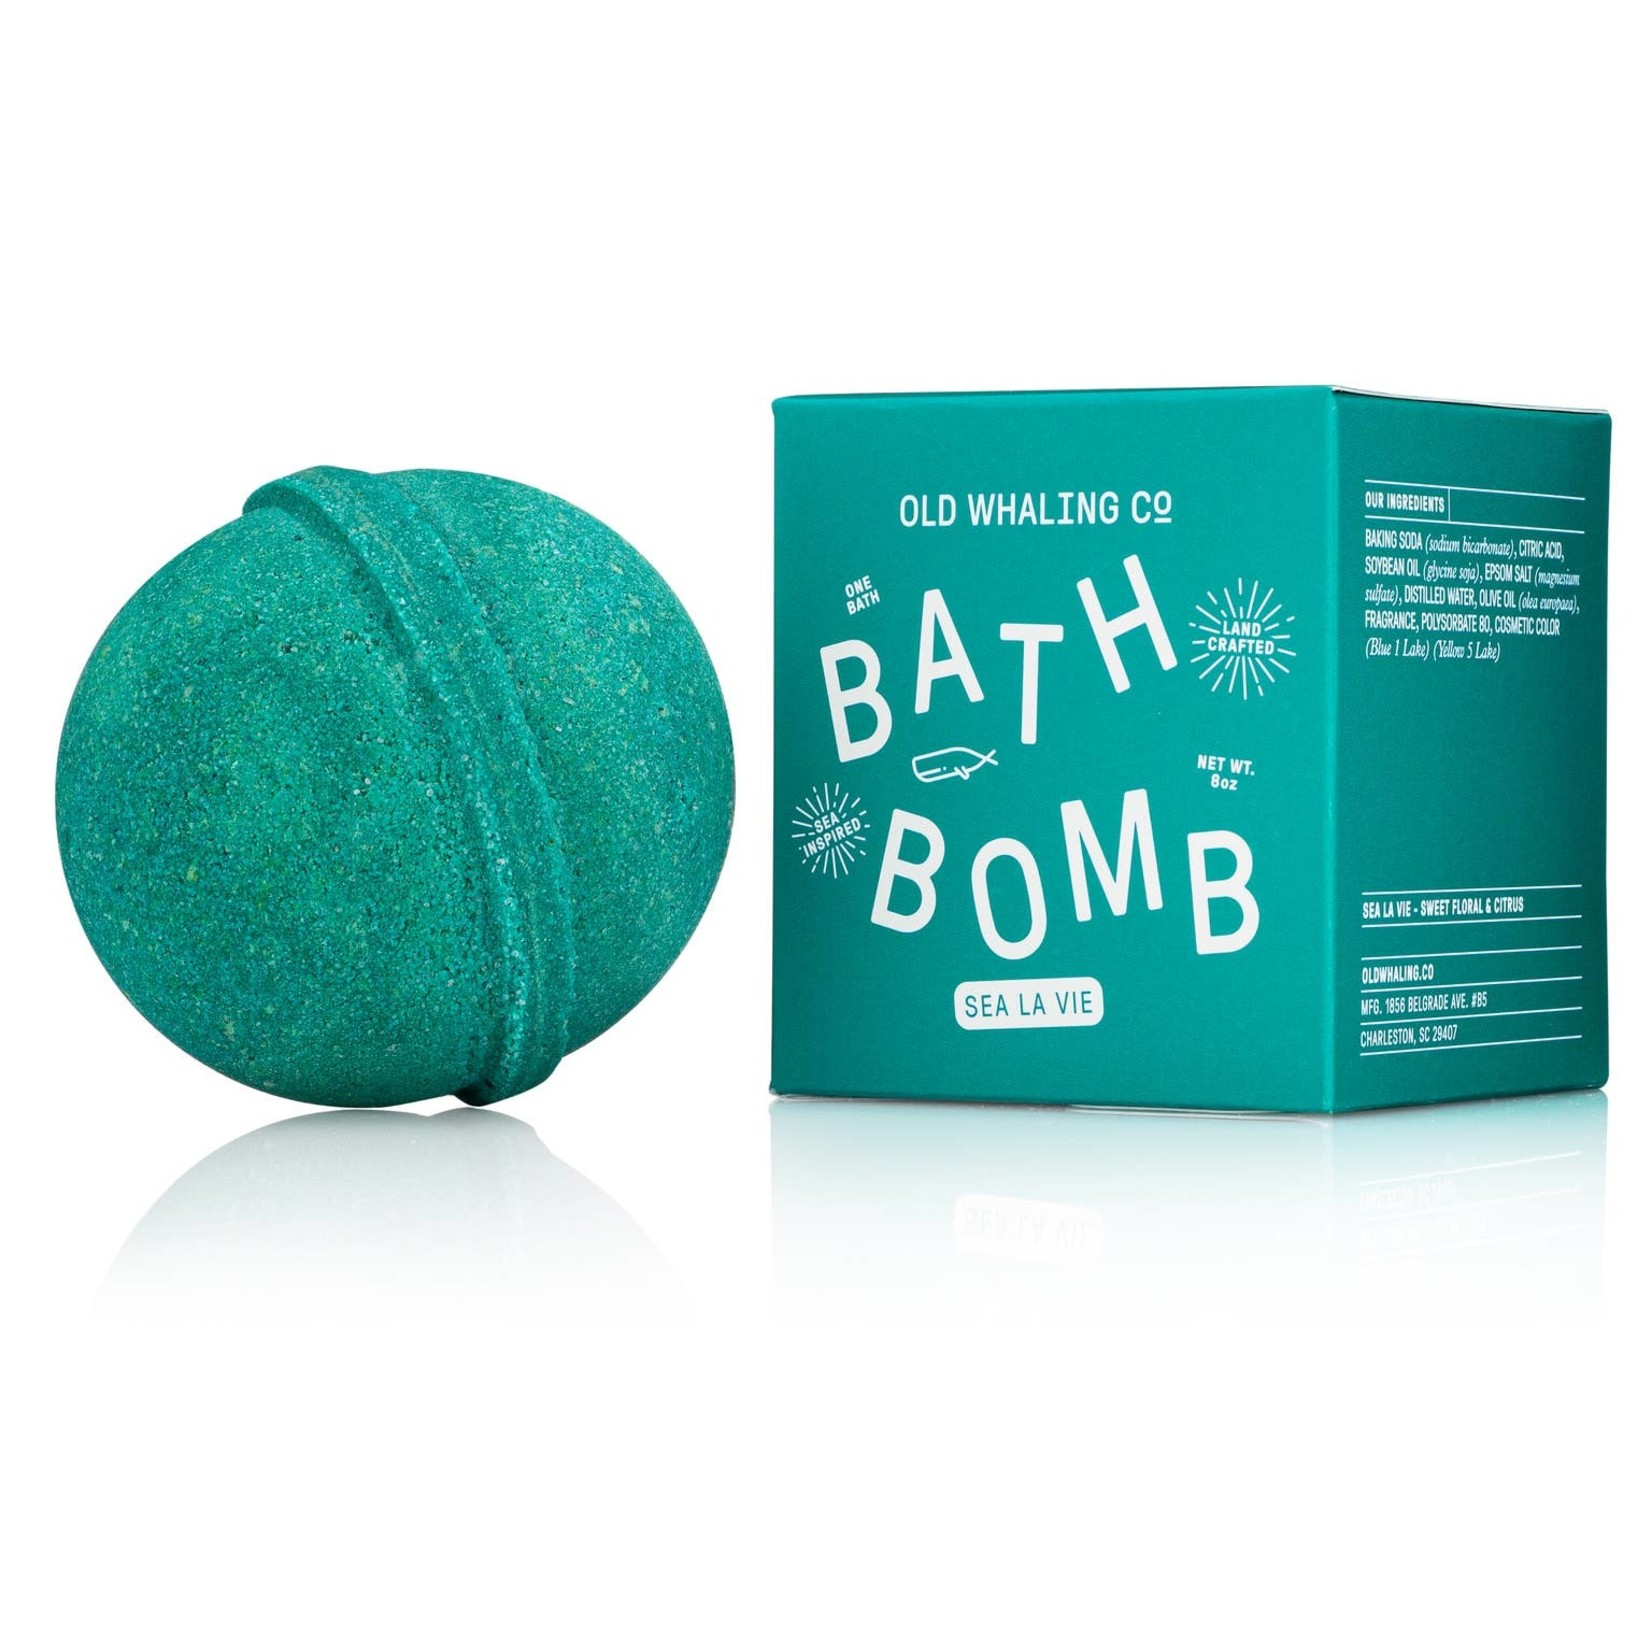 Old Whaling Company Old Whaling Company Bath Bomb Sea La Vie